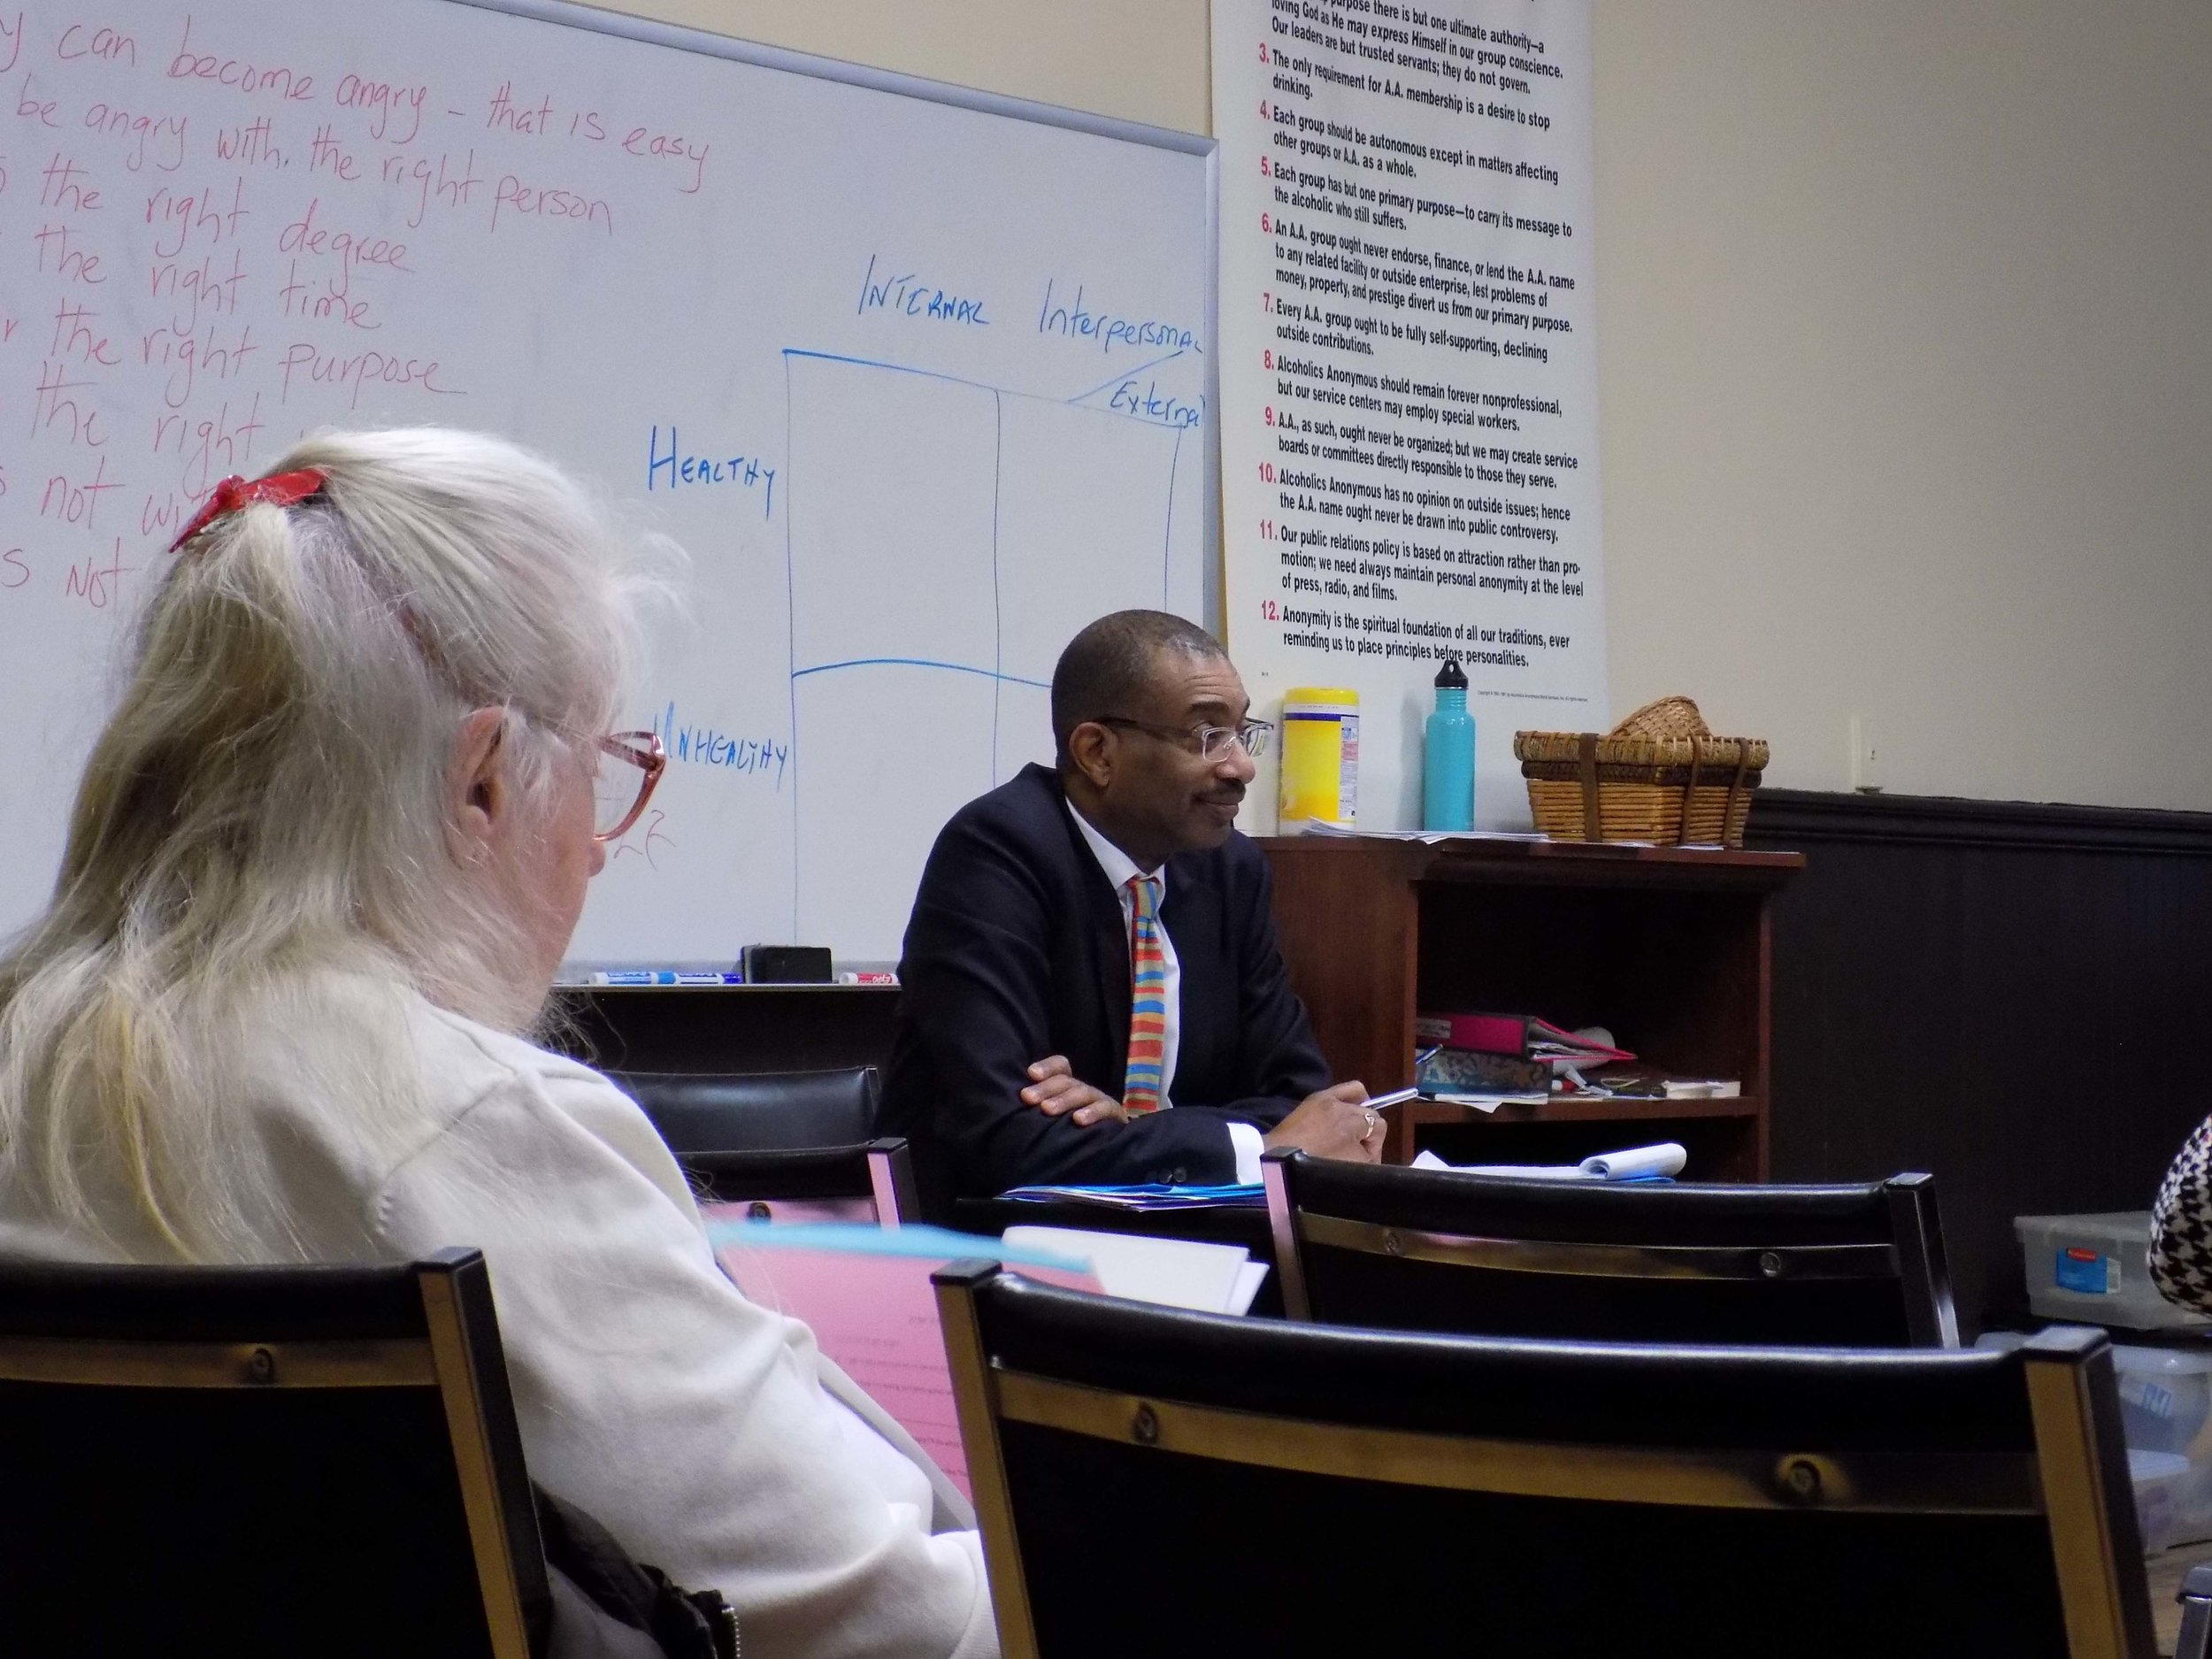 Dr. Charles Morgan leading the Adult Forum on January 22, 2017.